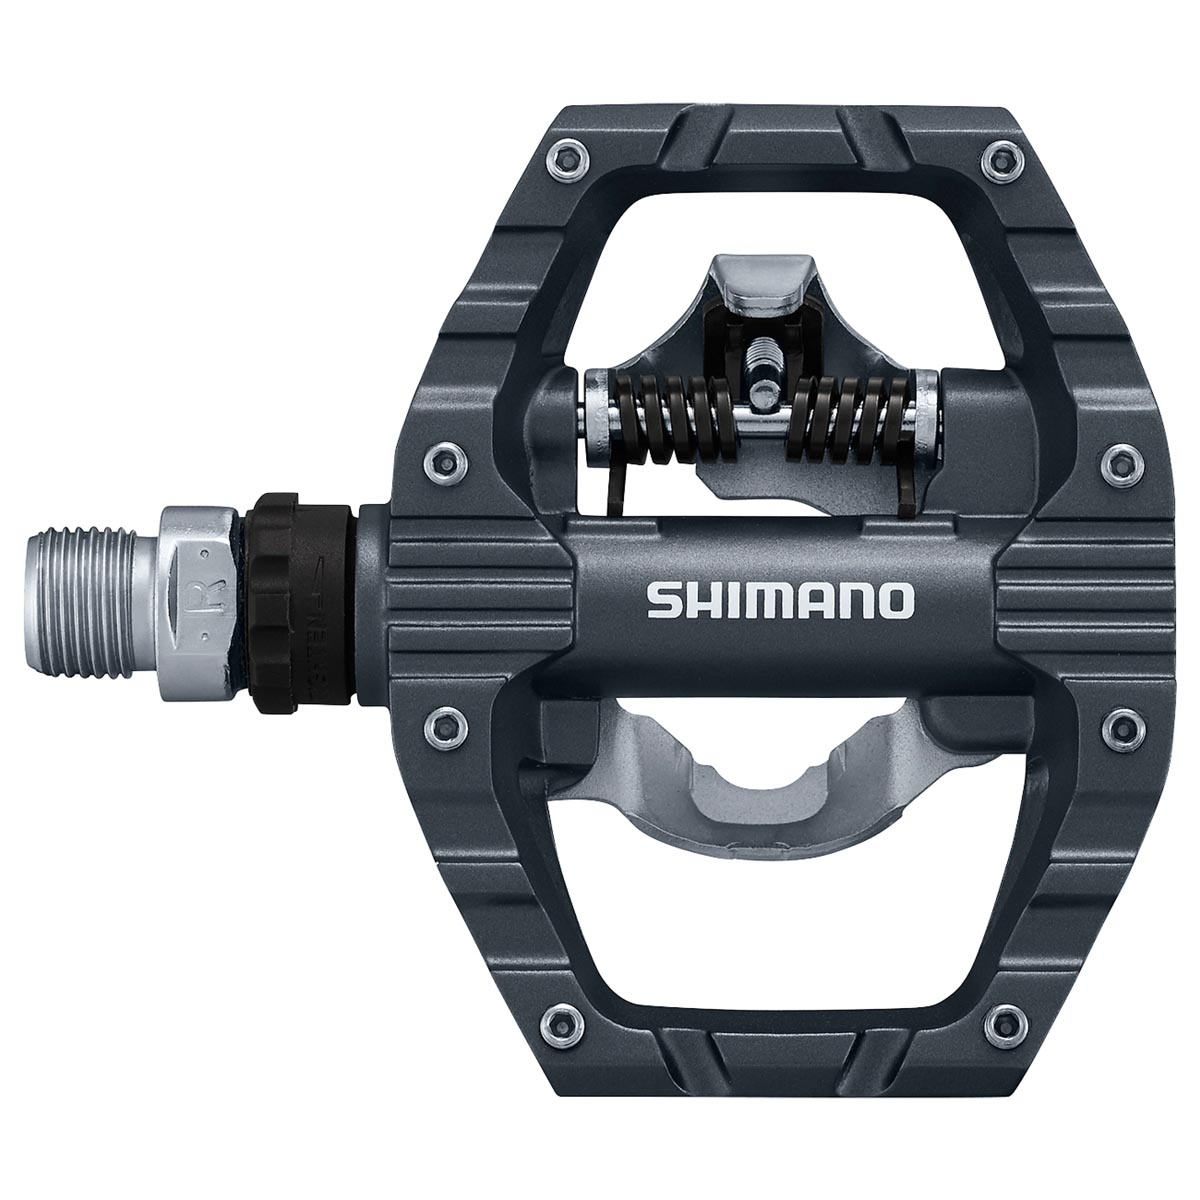 PEDALES SHIMANO PD-EH500 SPD PLATEFORME DOUBLE